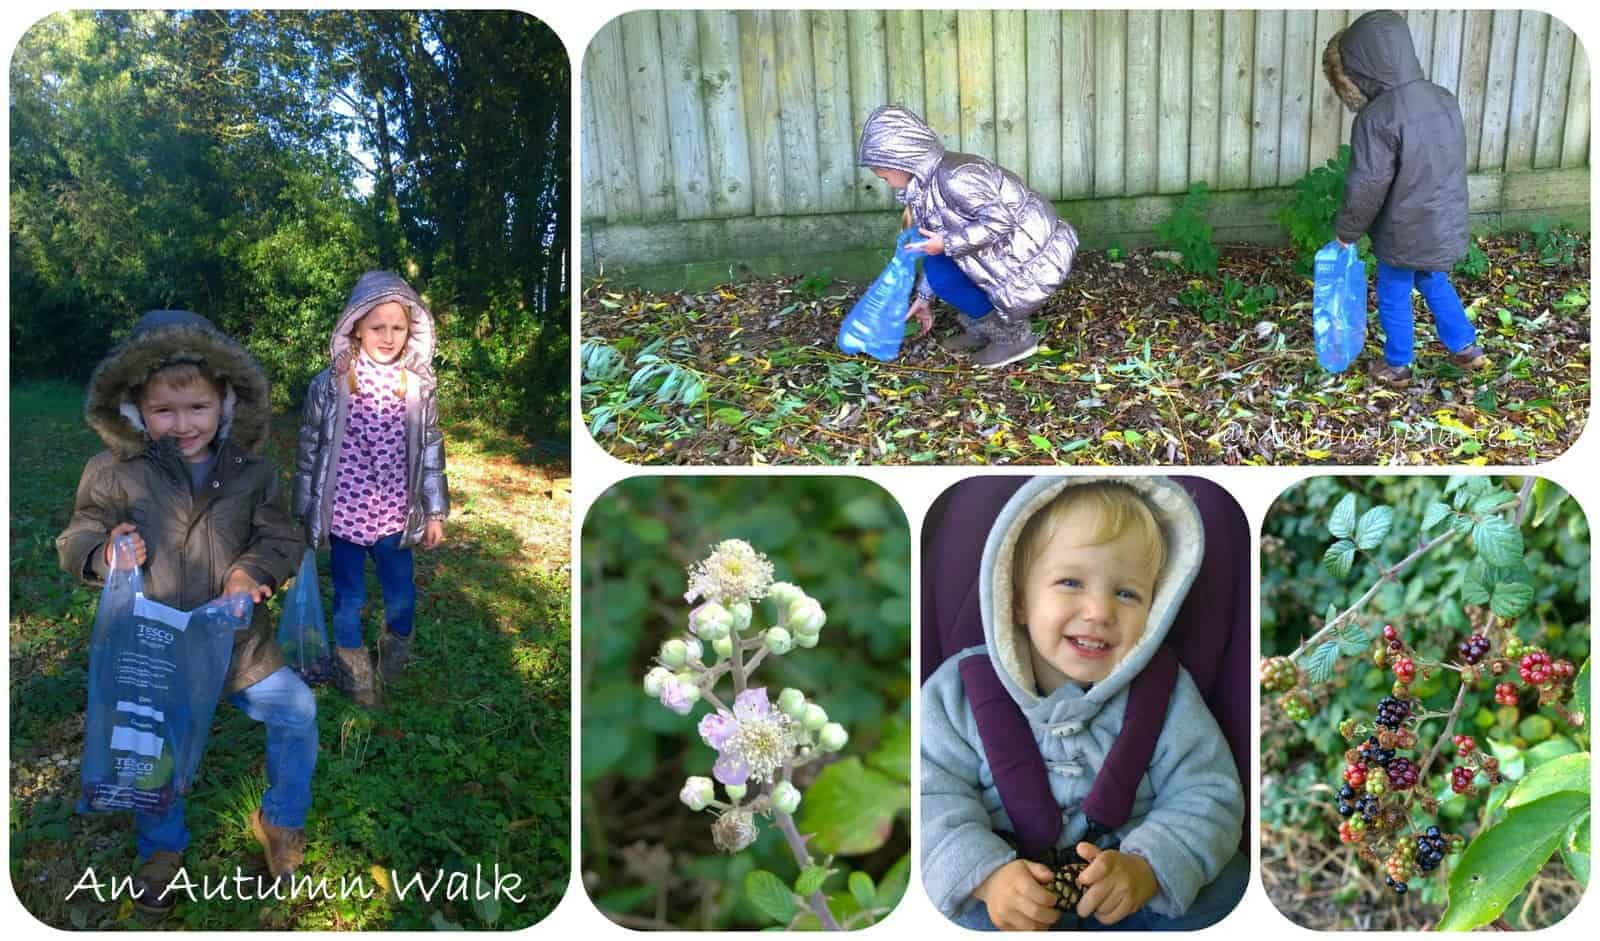 Look what we found on our Autumn walk!